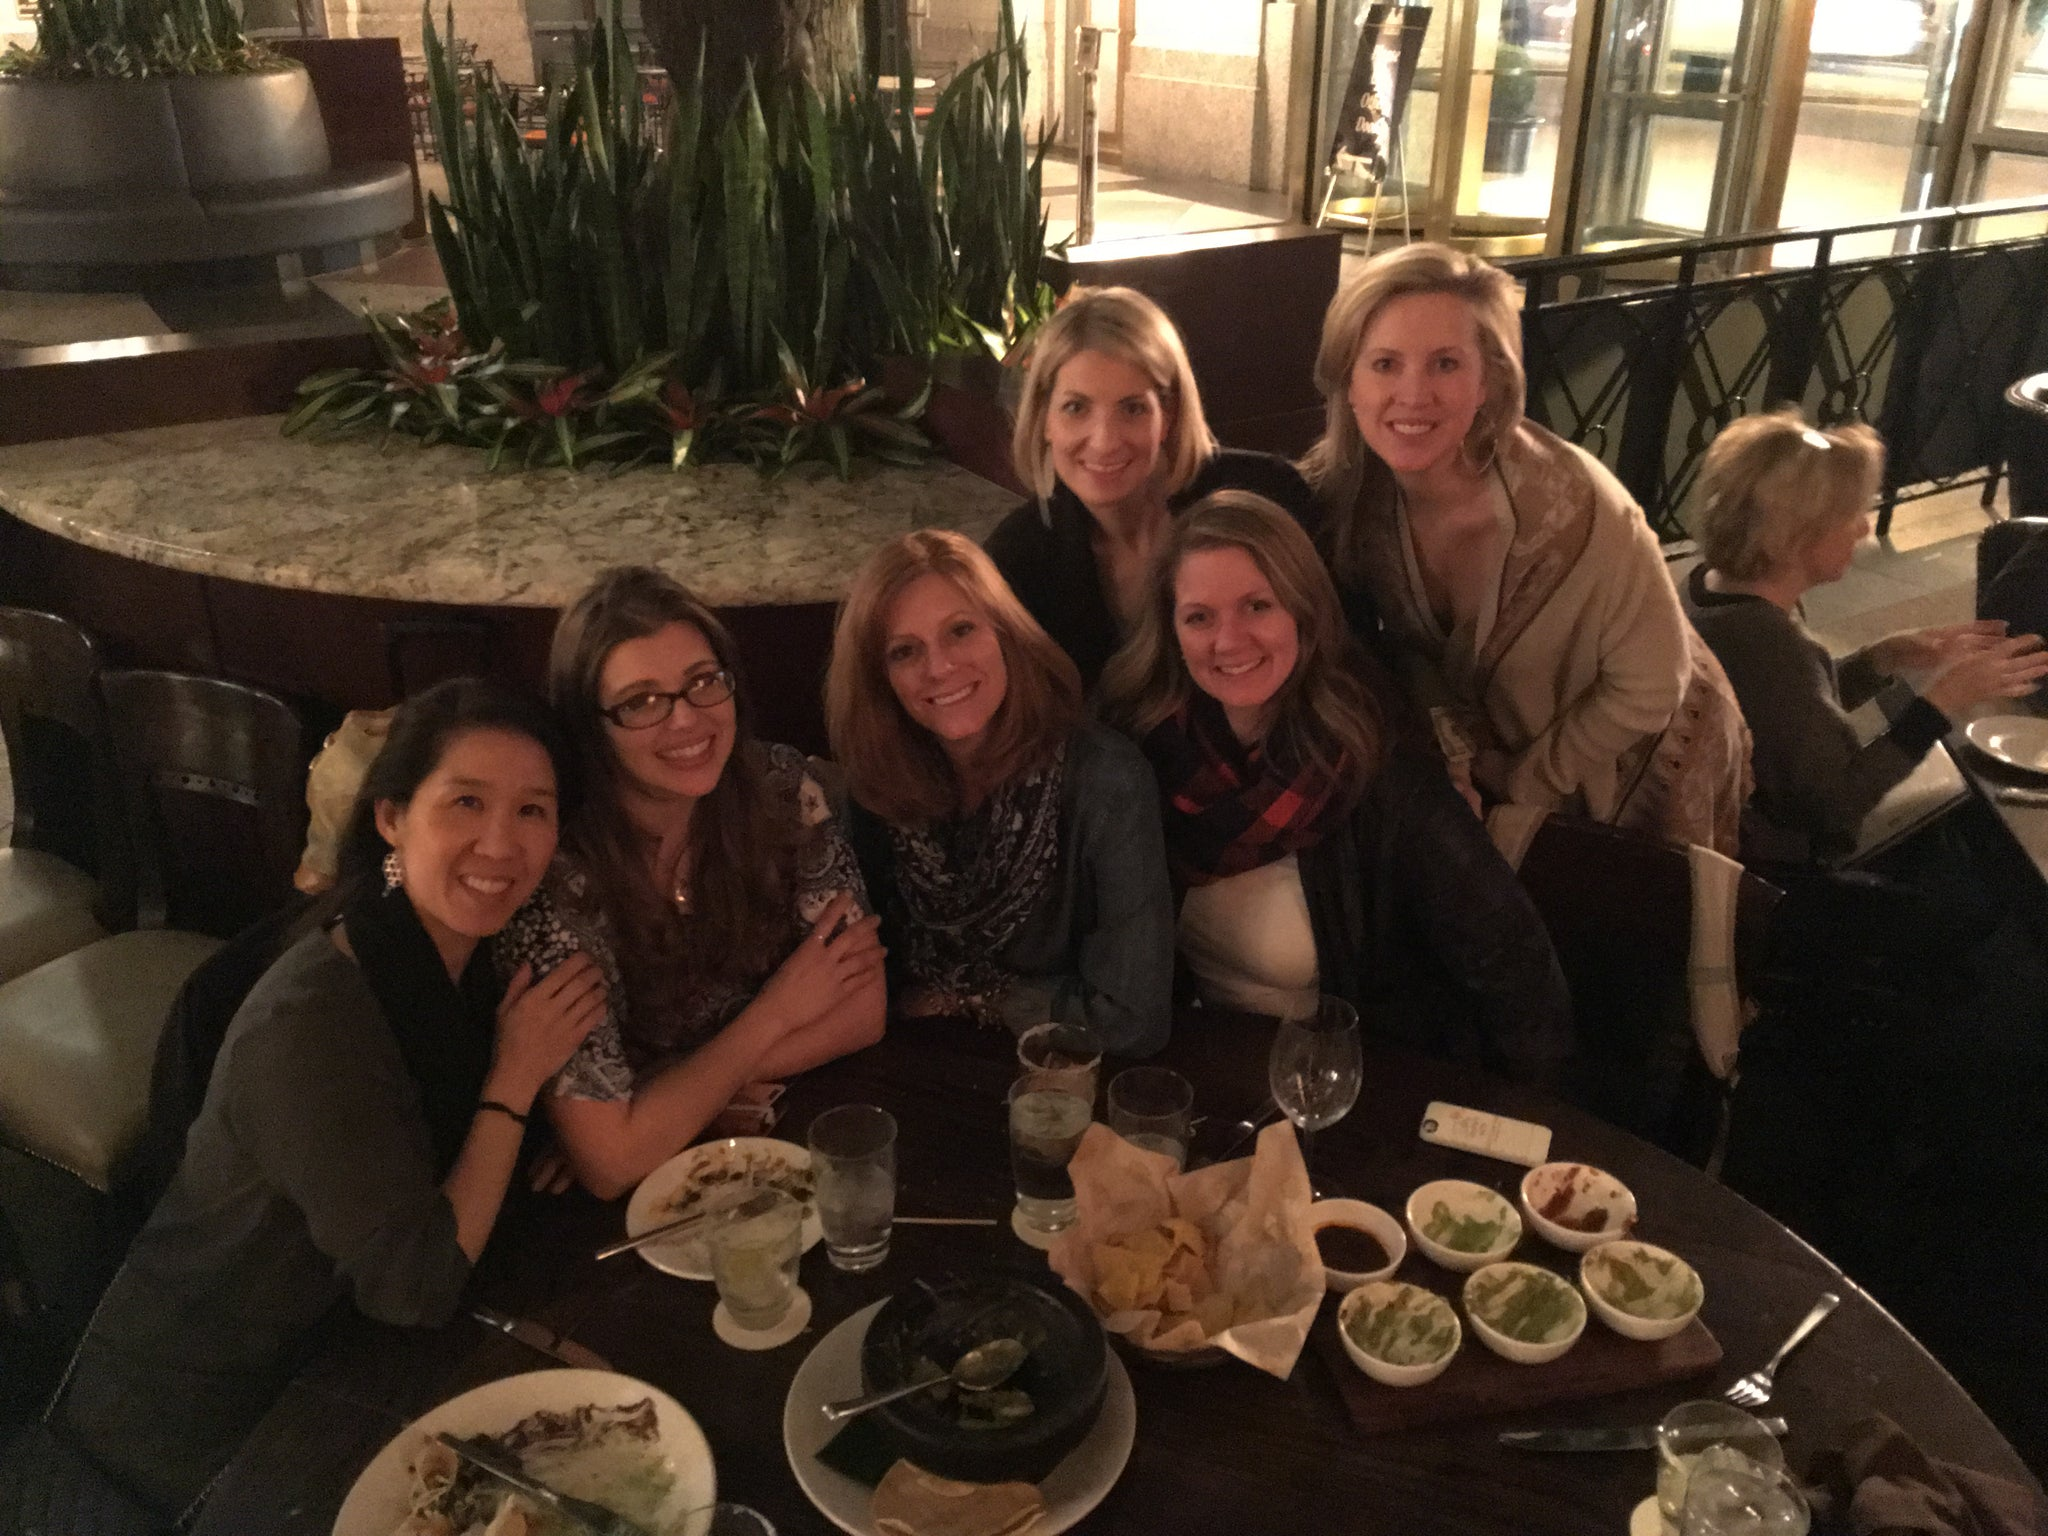 Baby Elephant Ears, Pello, Elizabeth Everly, Chelsea Hoffman, Jaq Jaq Bird, & Pully Palz  at dinner!